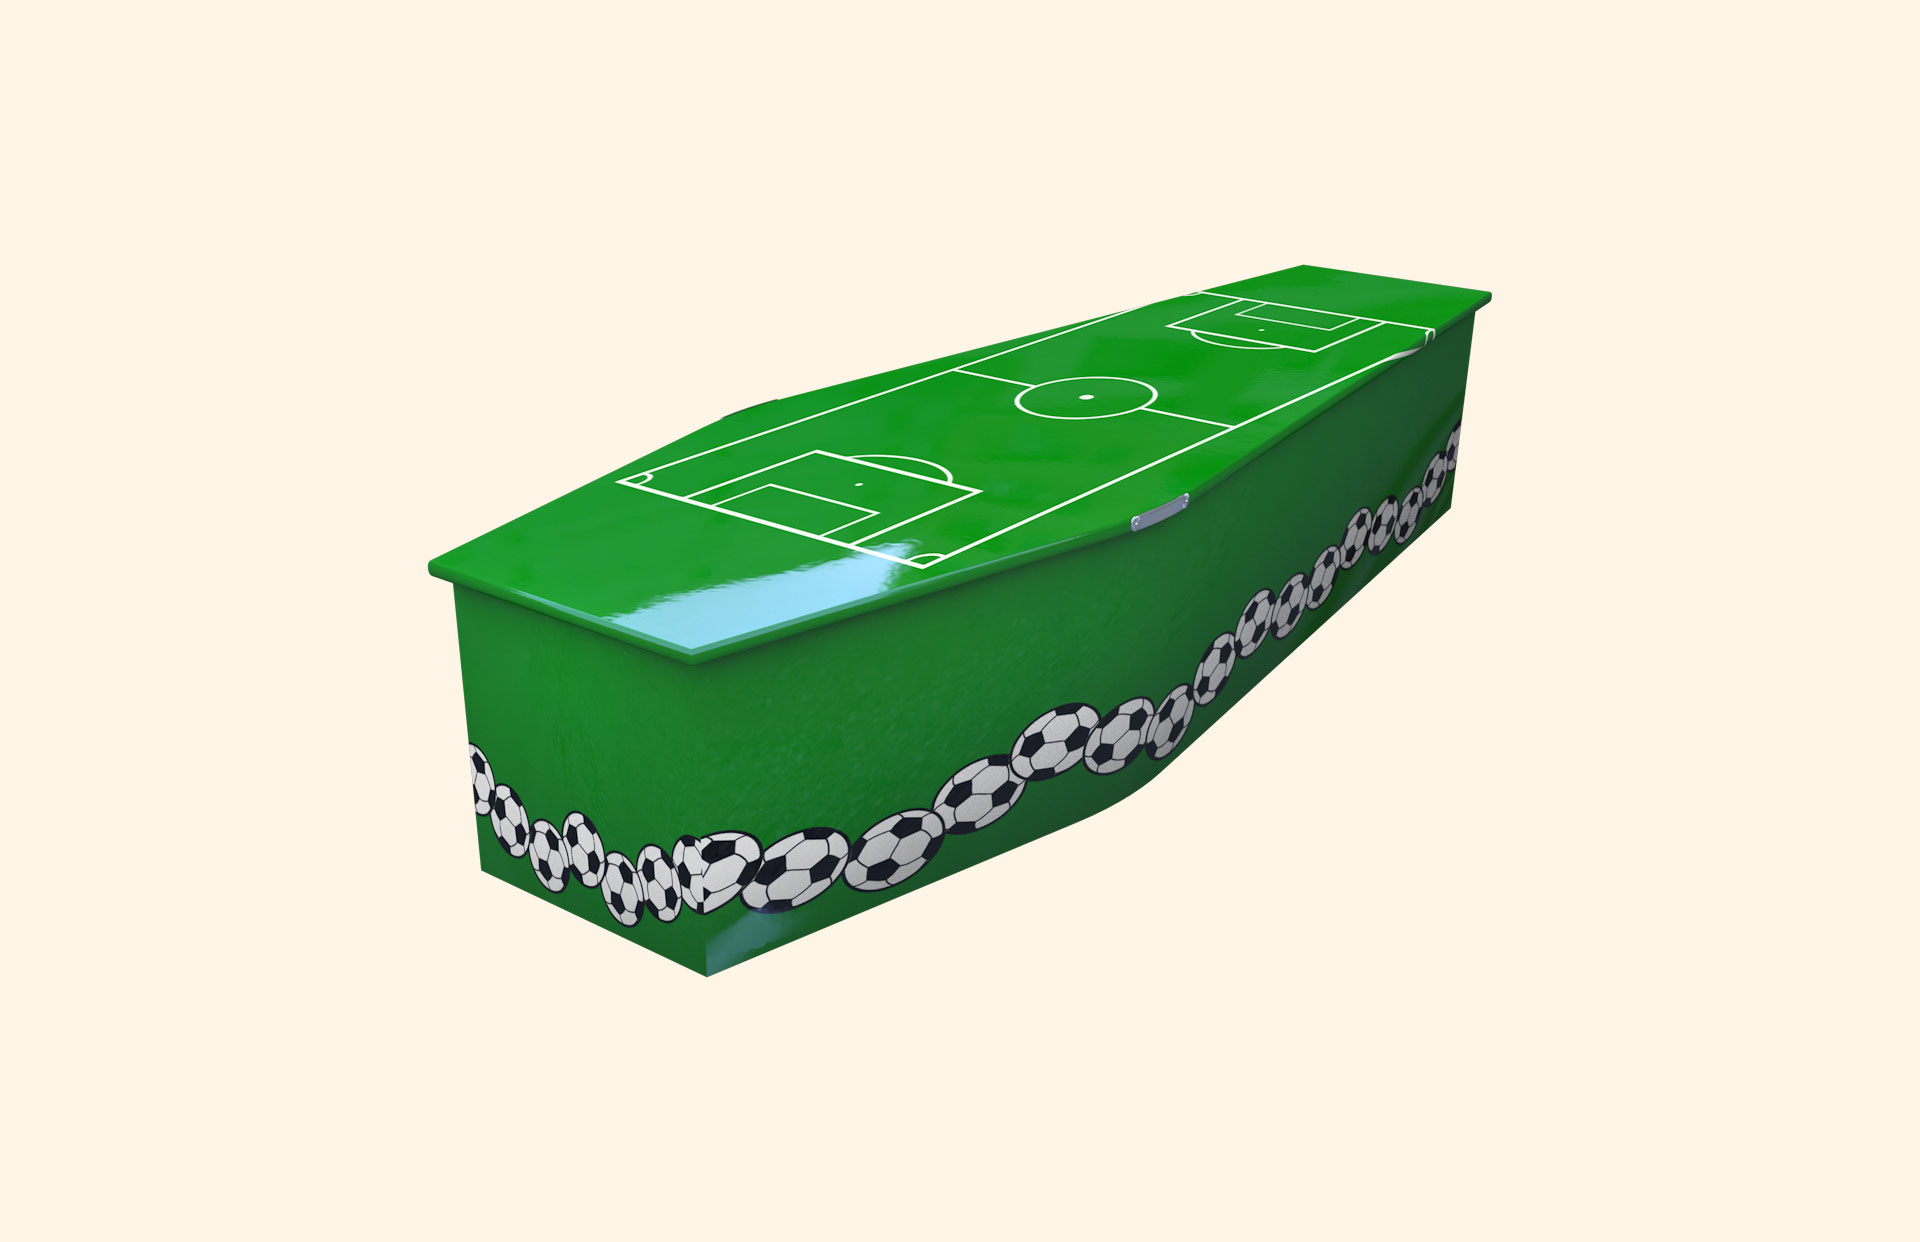 Football Pitch child coffin